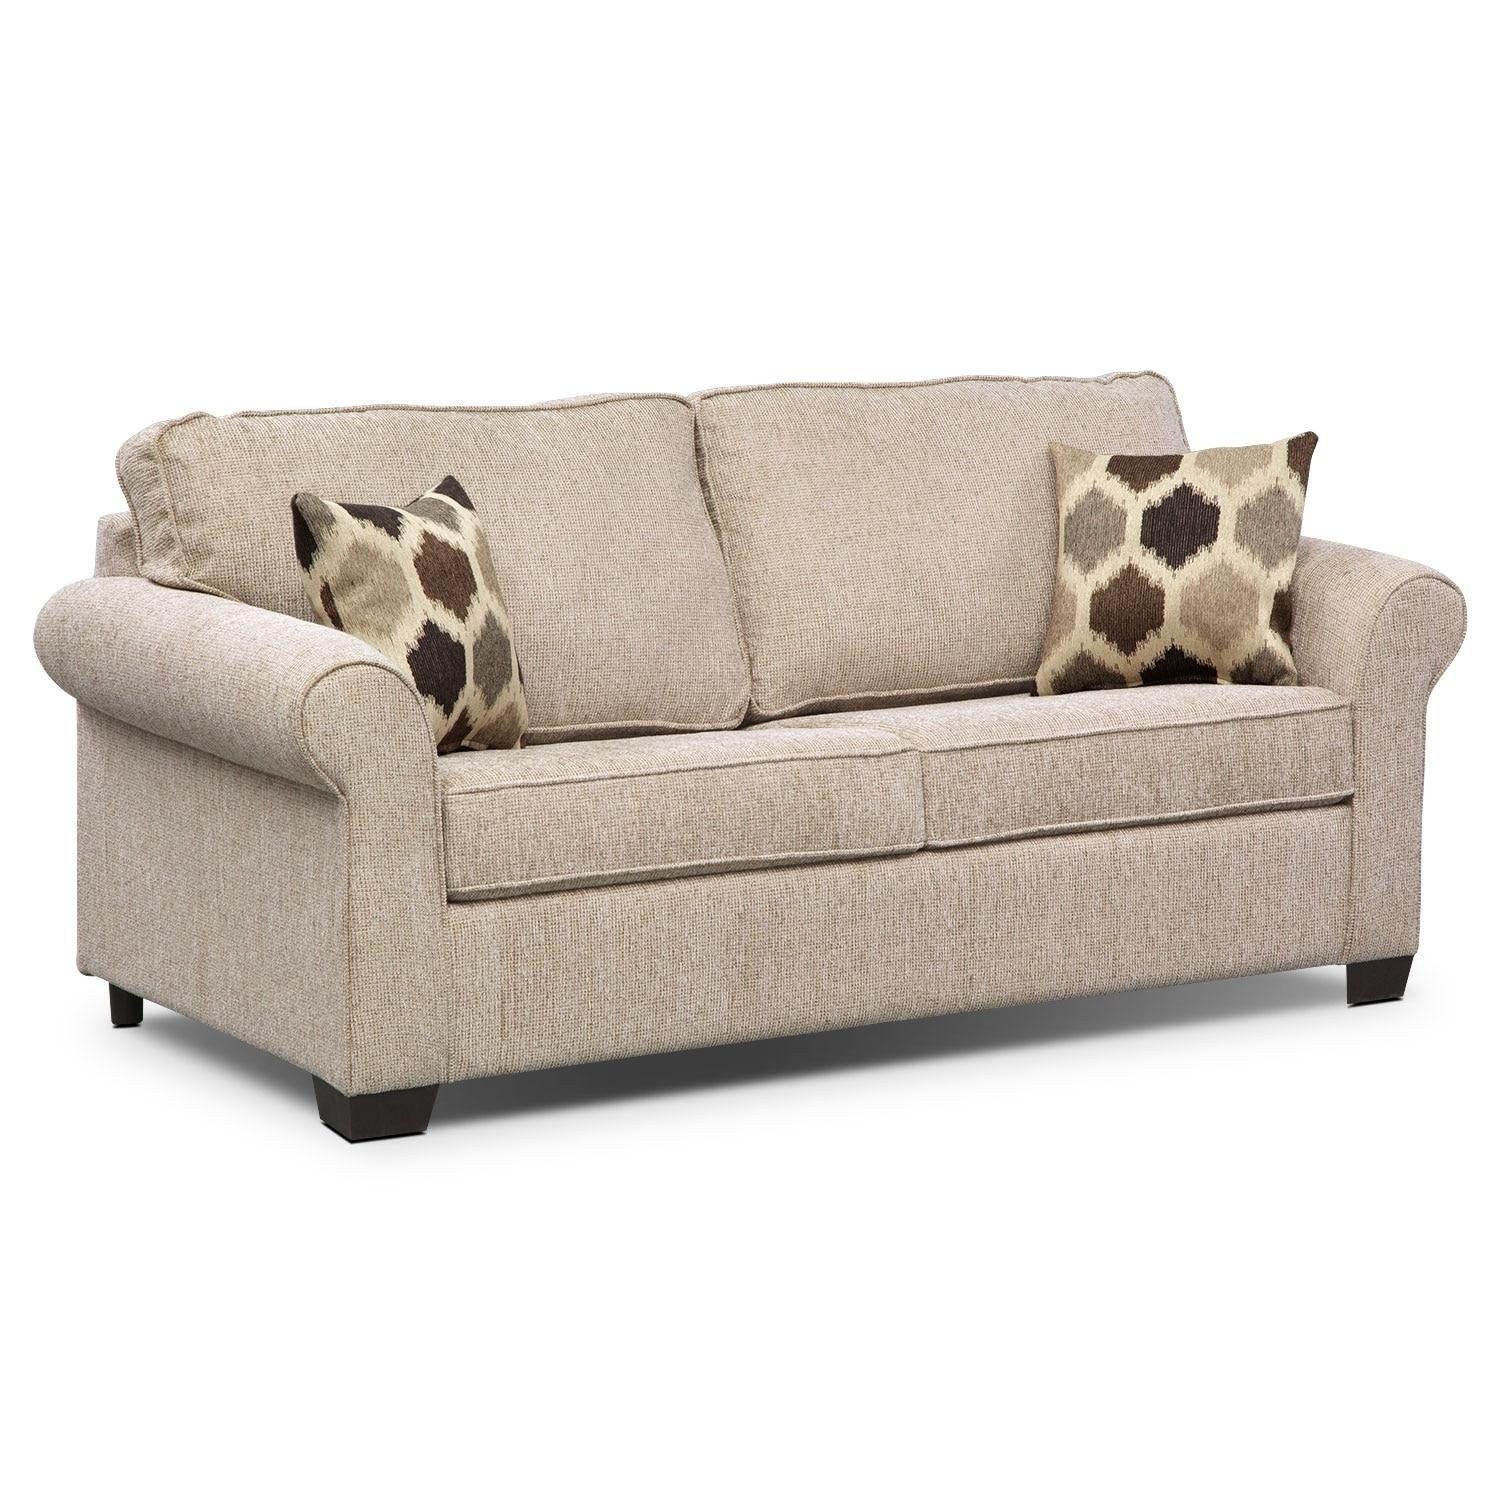 Sofas Center : Queen Sleeper Sofa Sale Navasota Reviews Kenzey Pertaining To Queen Sleeper Sofa Sheets (Image 15 of 20)